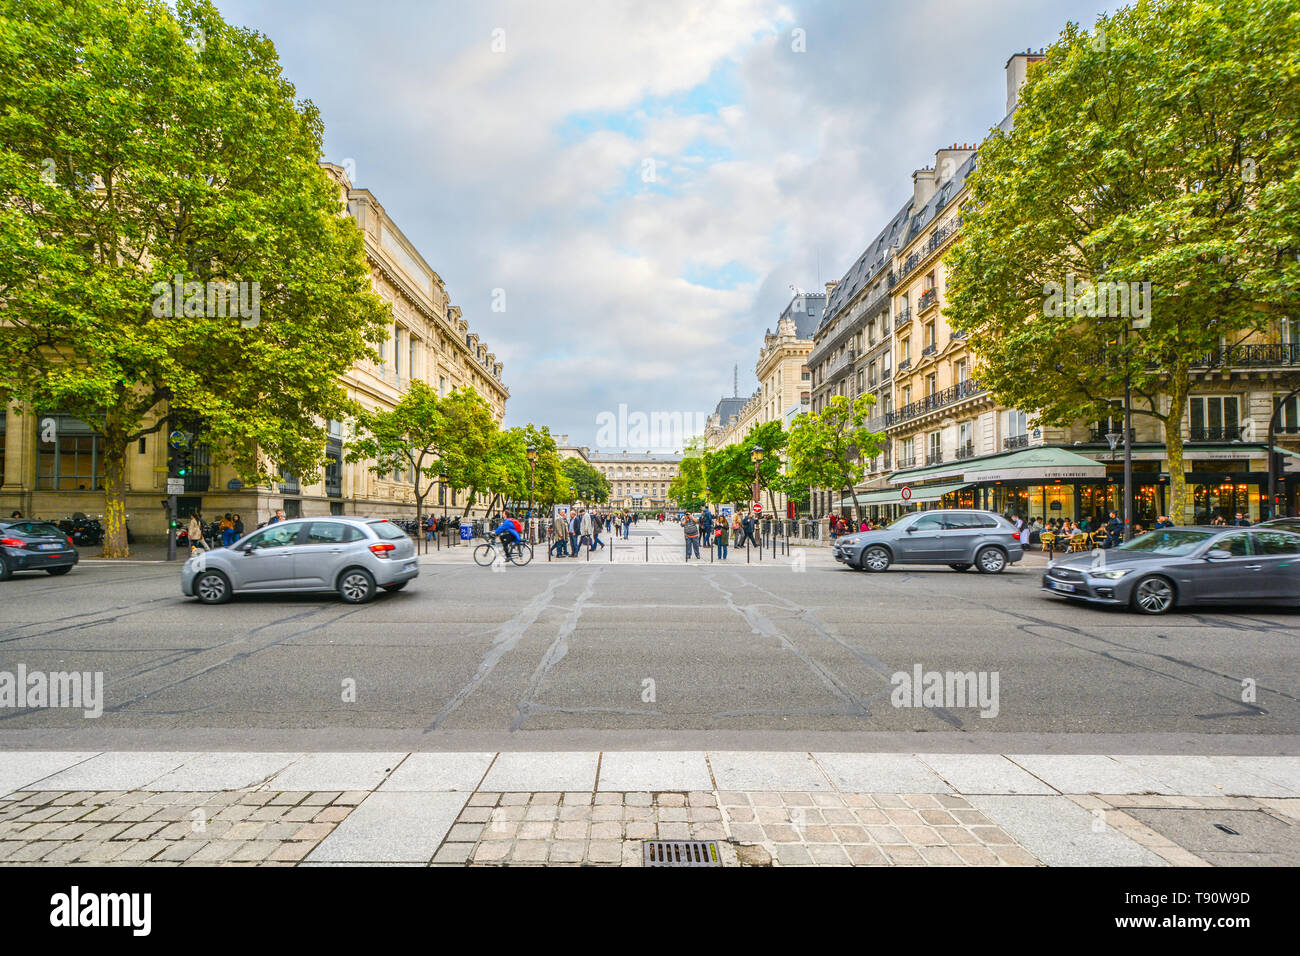 A street scene on the Ile de la Cite in the fourth arrondisement with the Palais du Justice visible on the right side of the pedestrian walkway Stock Photo